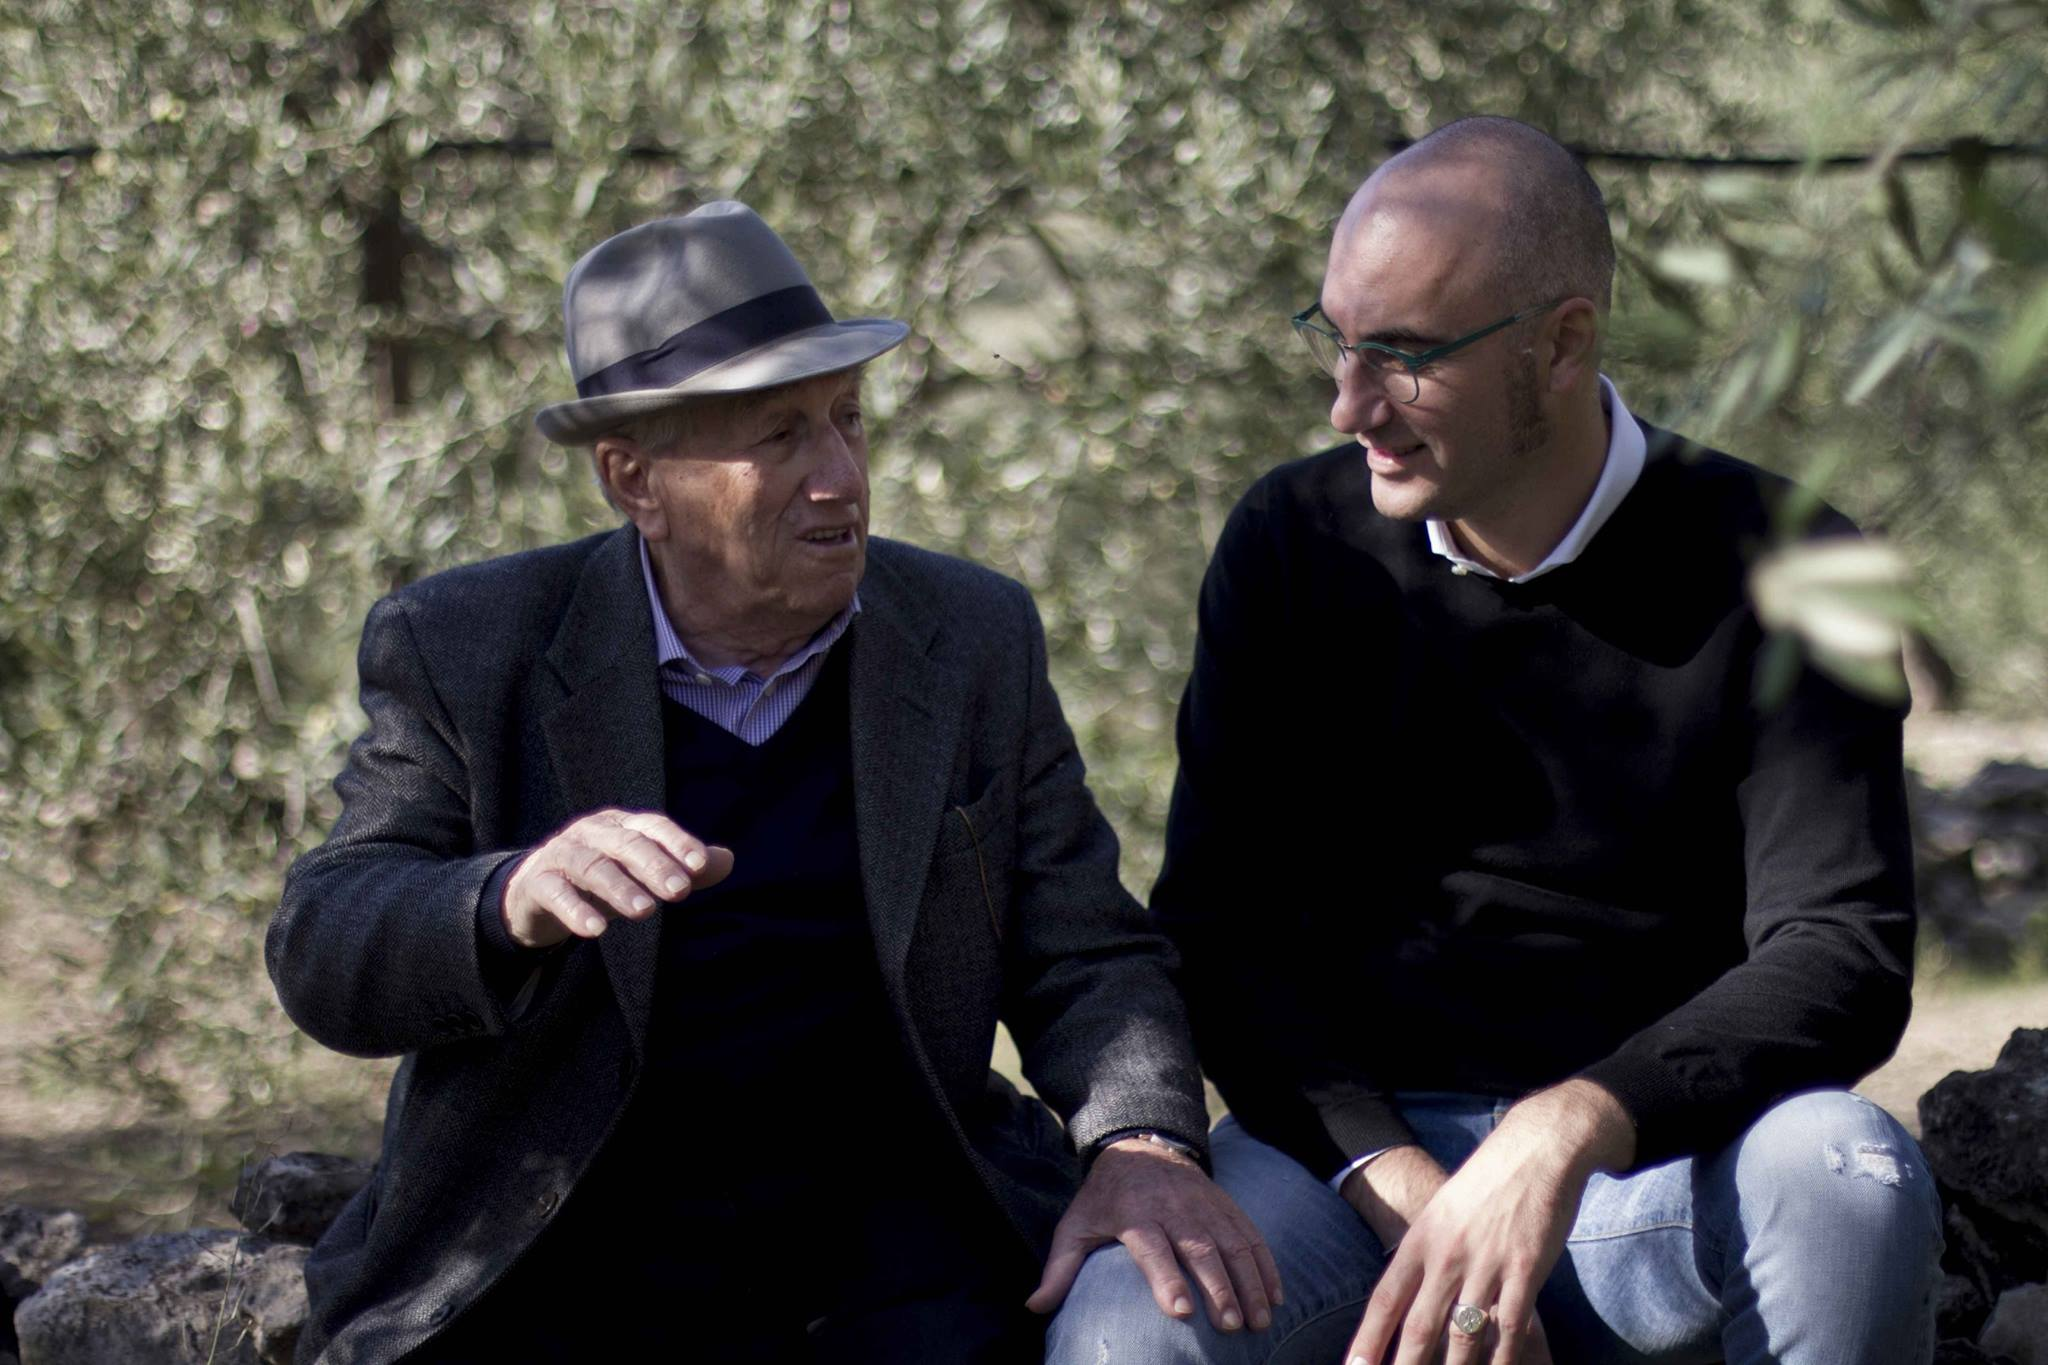 Meet the Muraglia Family. Five generations of olive oil makers. Frantoio Muraglia